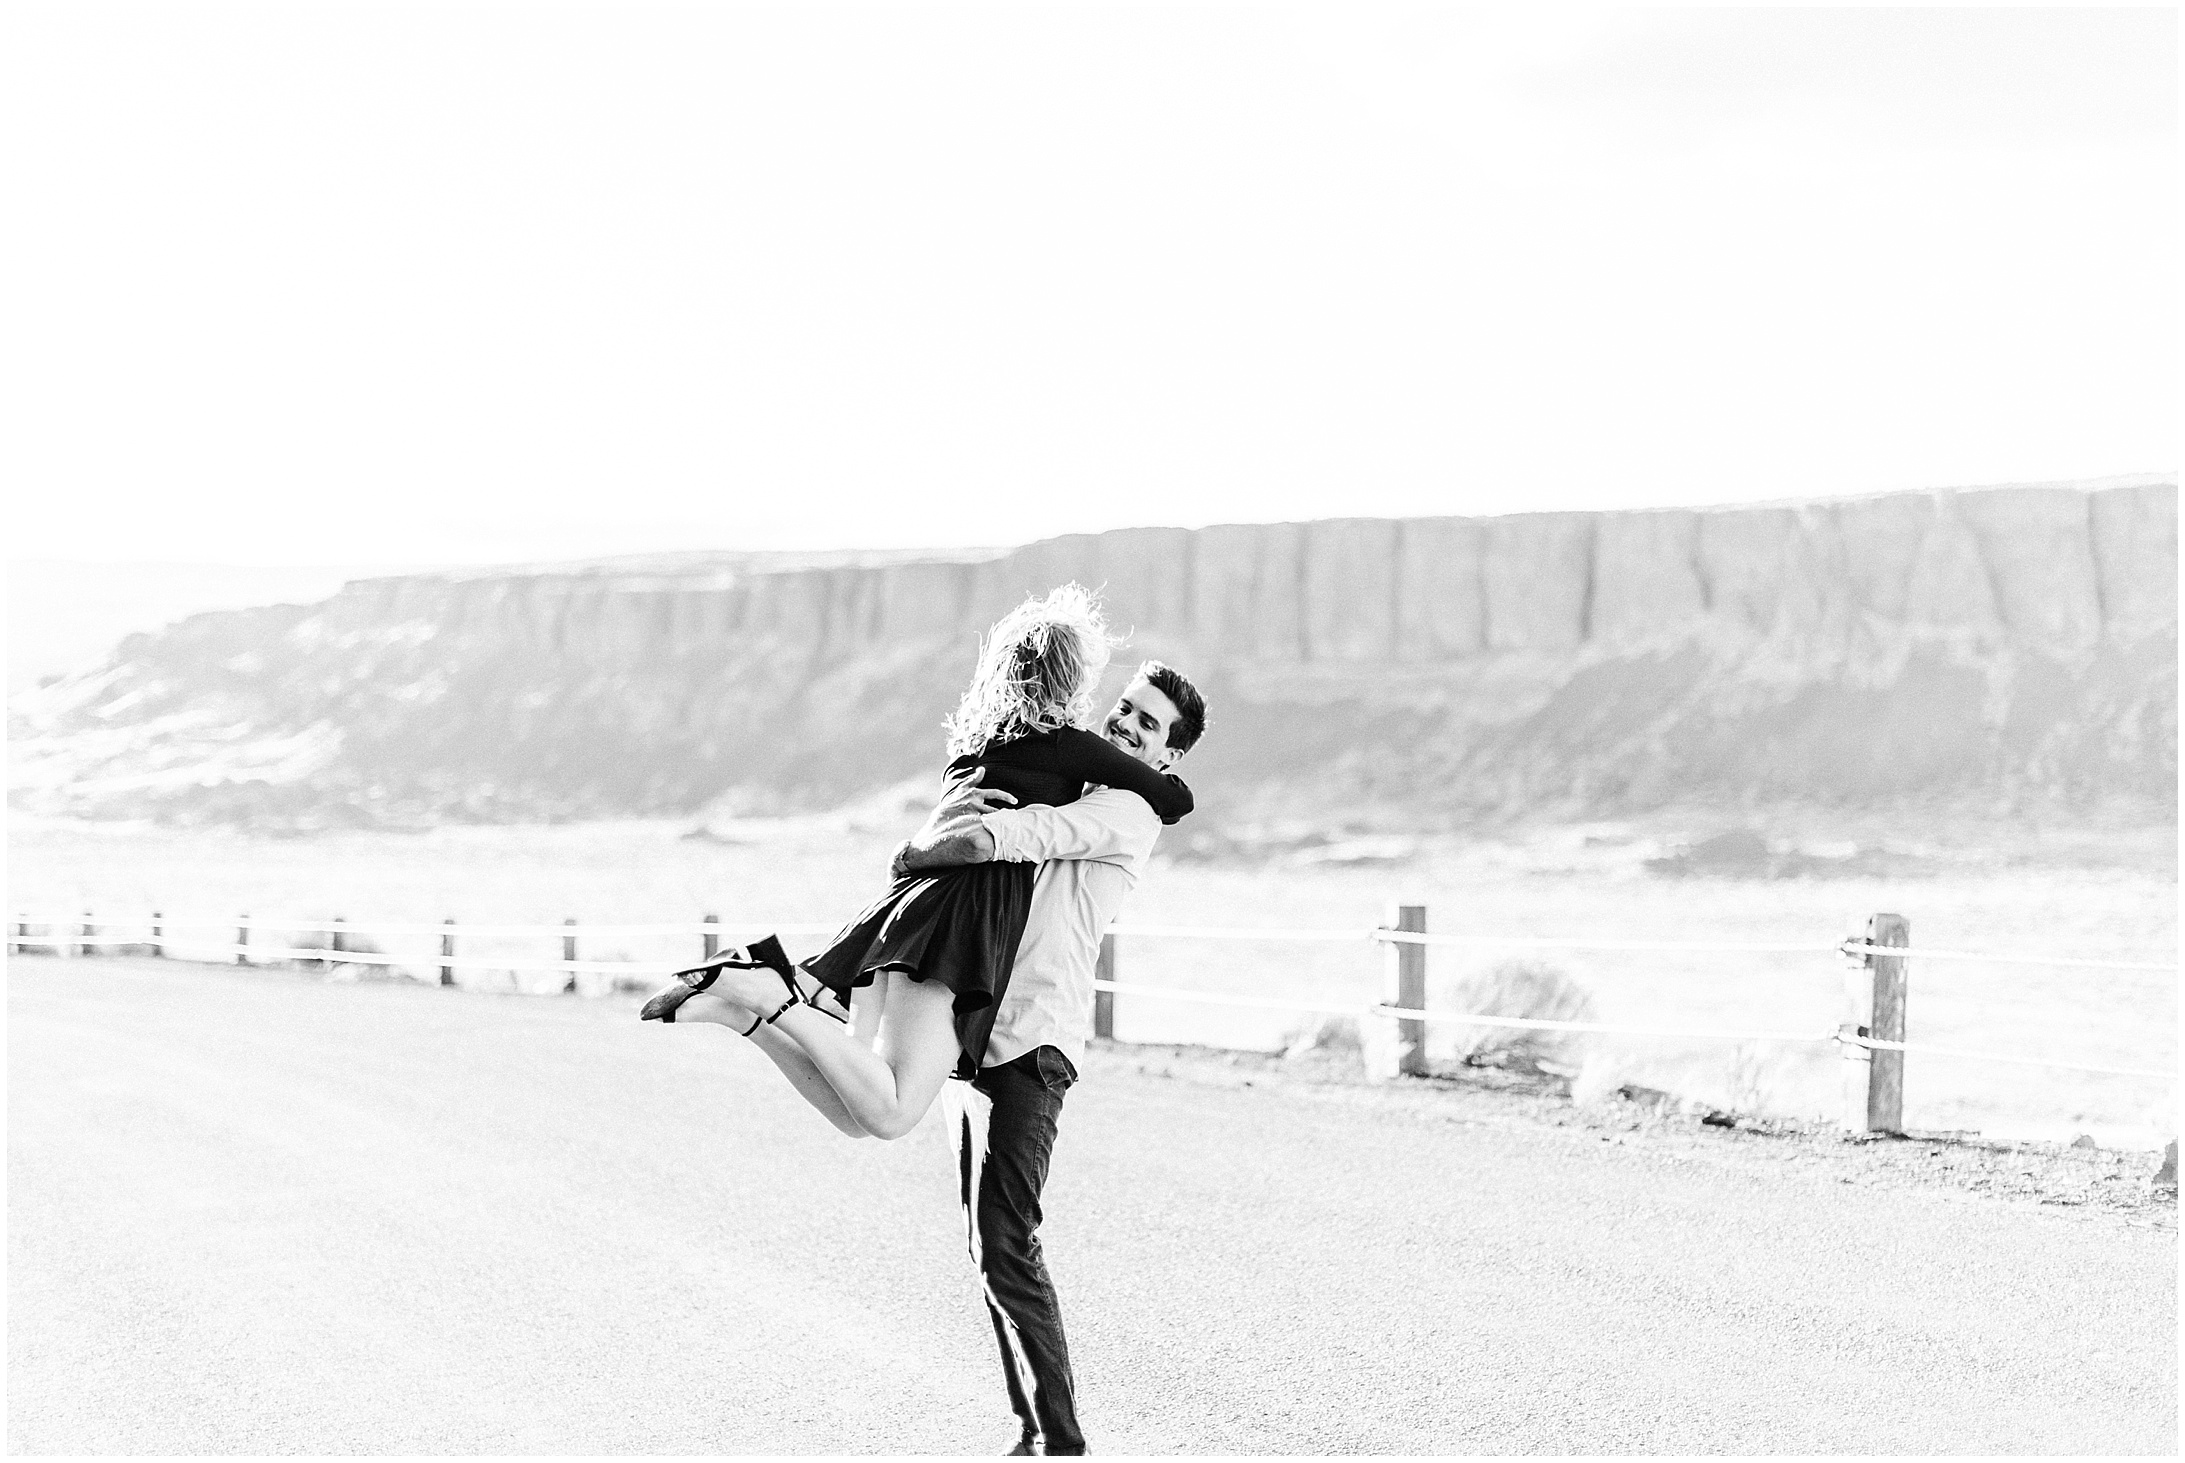 Black and White photo of a couple dancing alongside a desert road by Forthright Photo